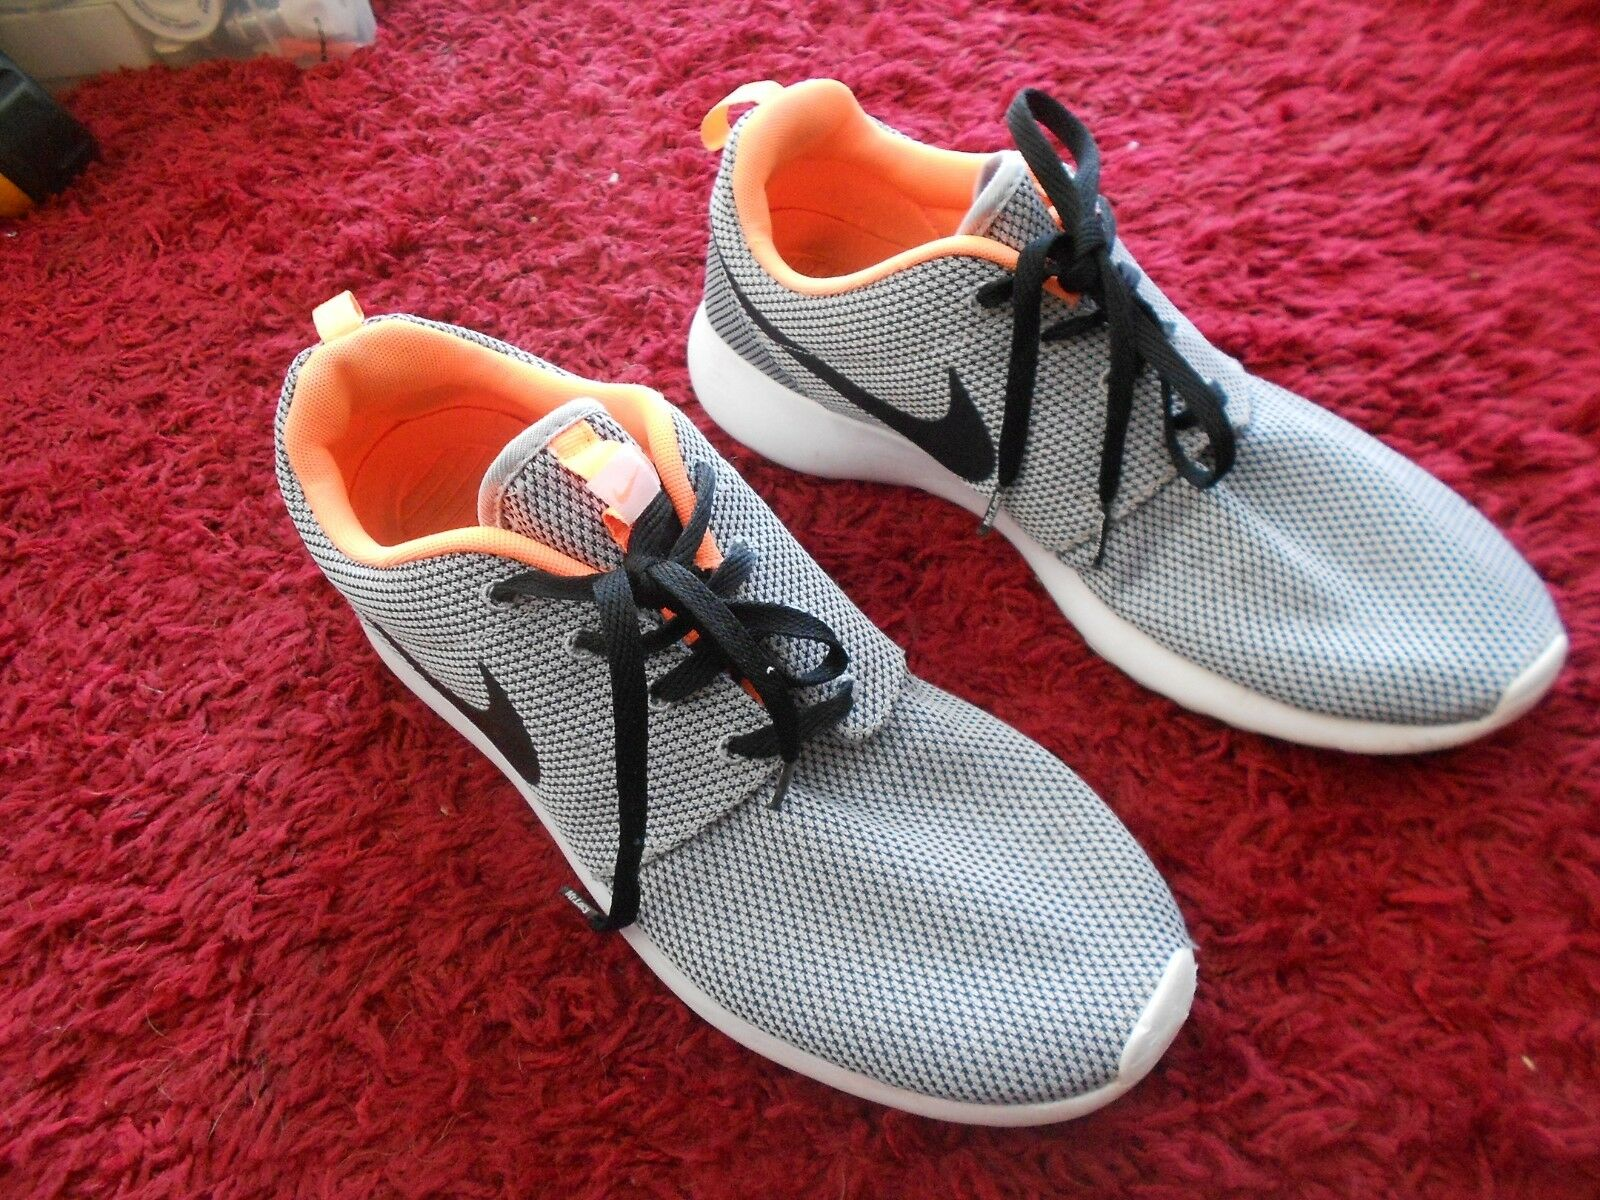 NIKE ROSHERUN TRAINERS UK SIZE 11 - IN QUITE GOOD CONDITION